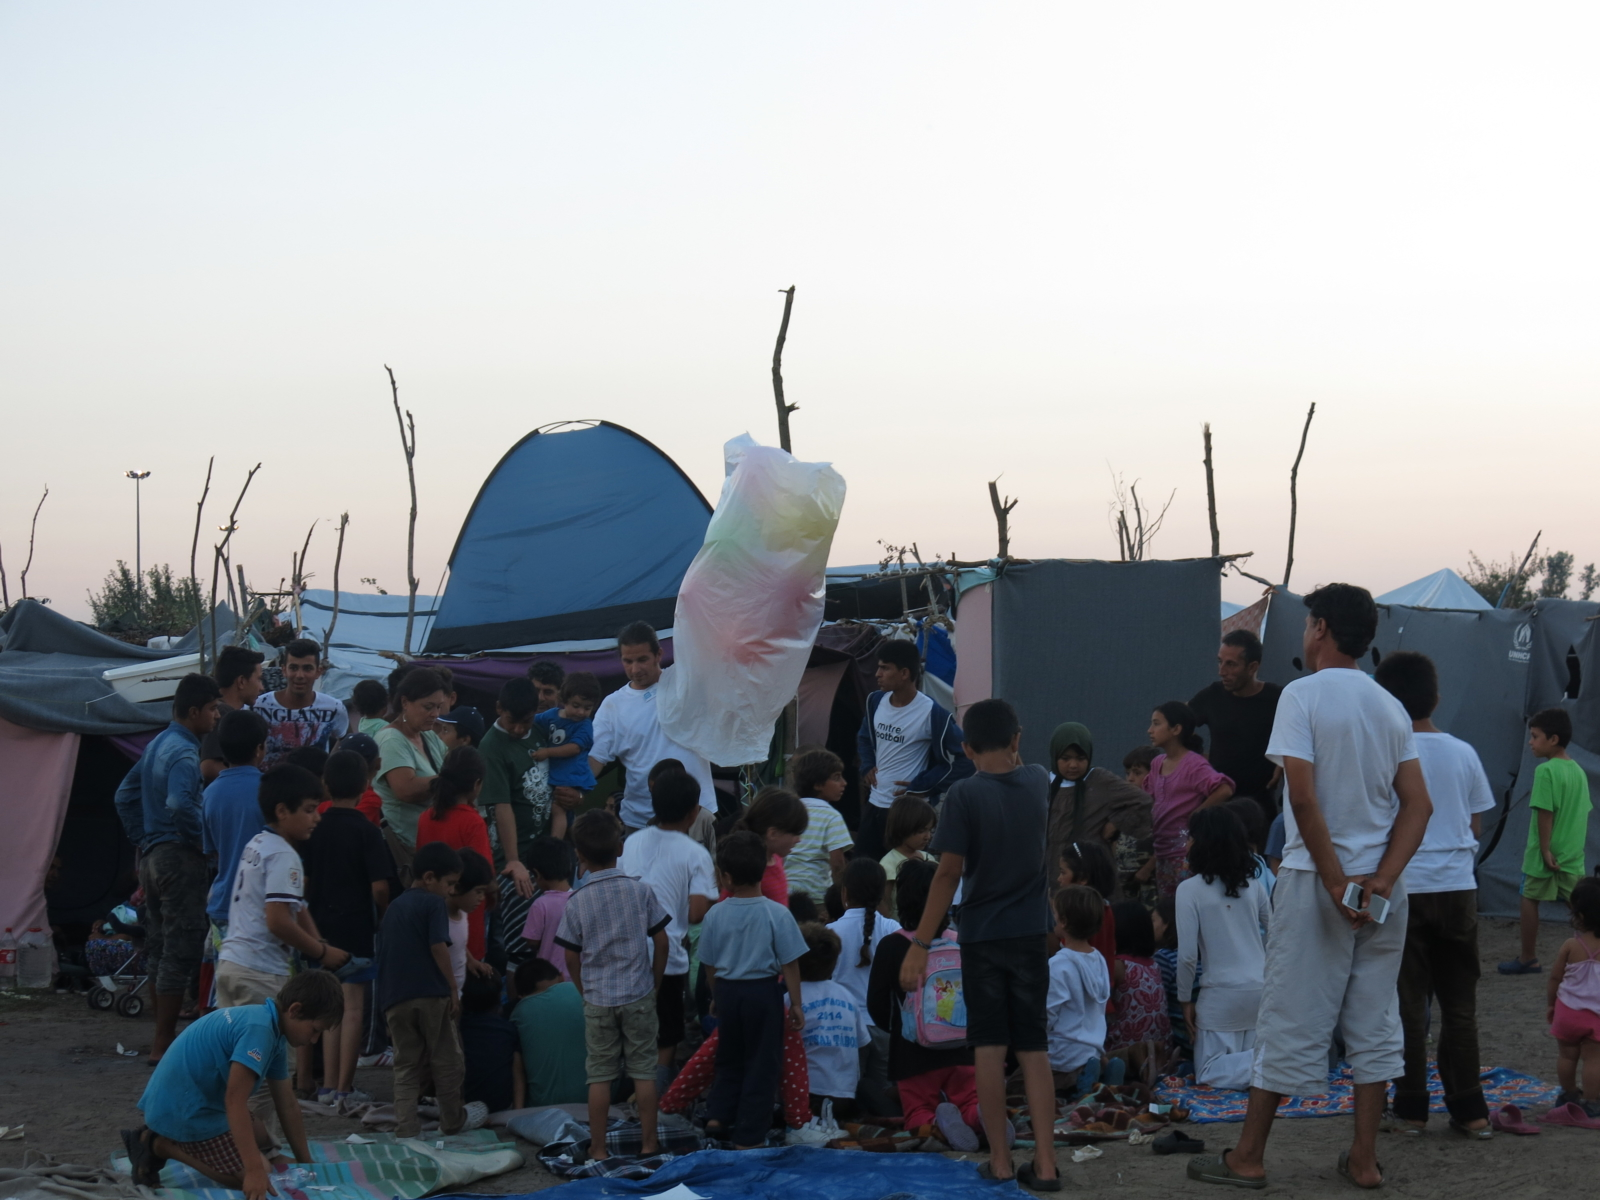 Hungary stoops to new low with plan to round up asylum seekers in container camps